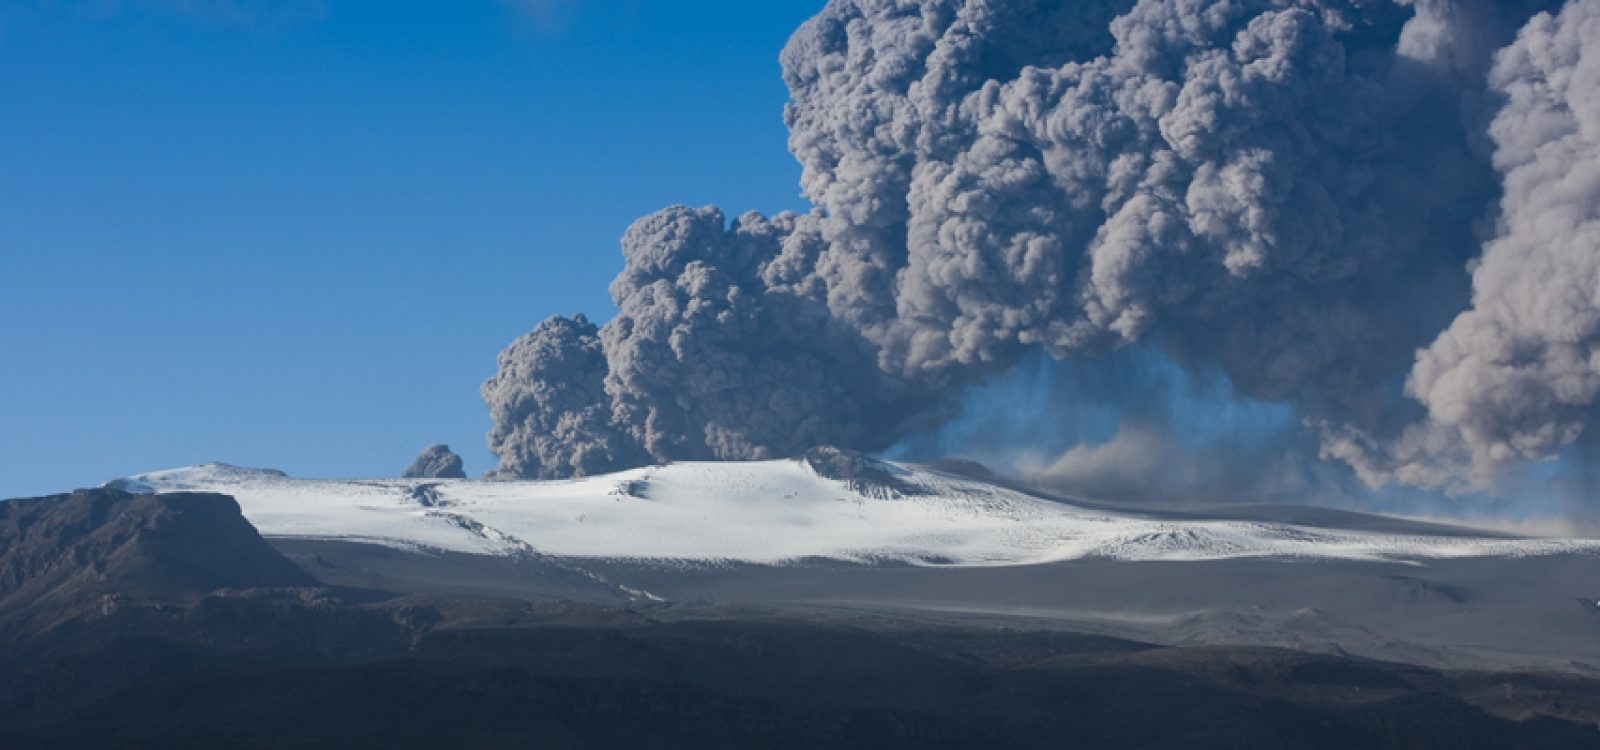 Volcanic eruptions and disruptions